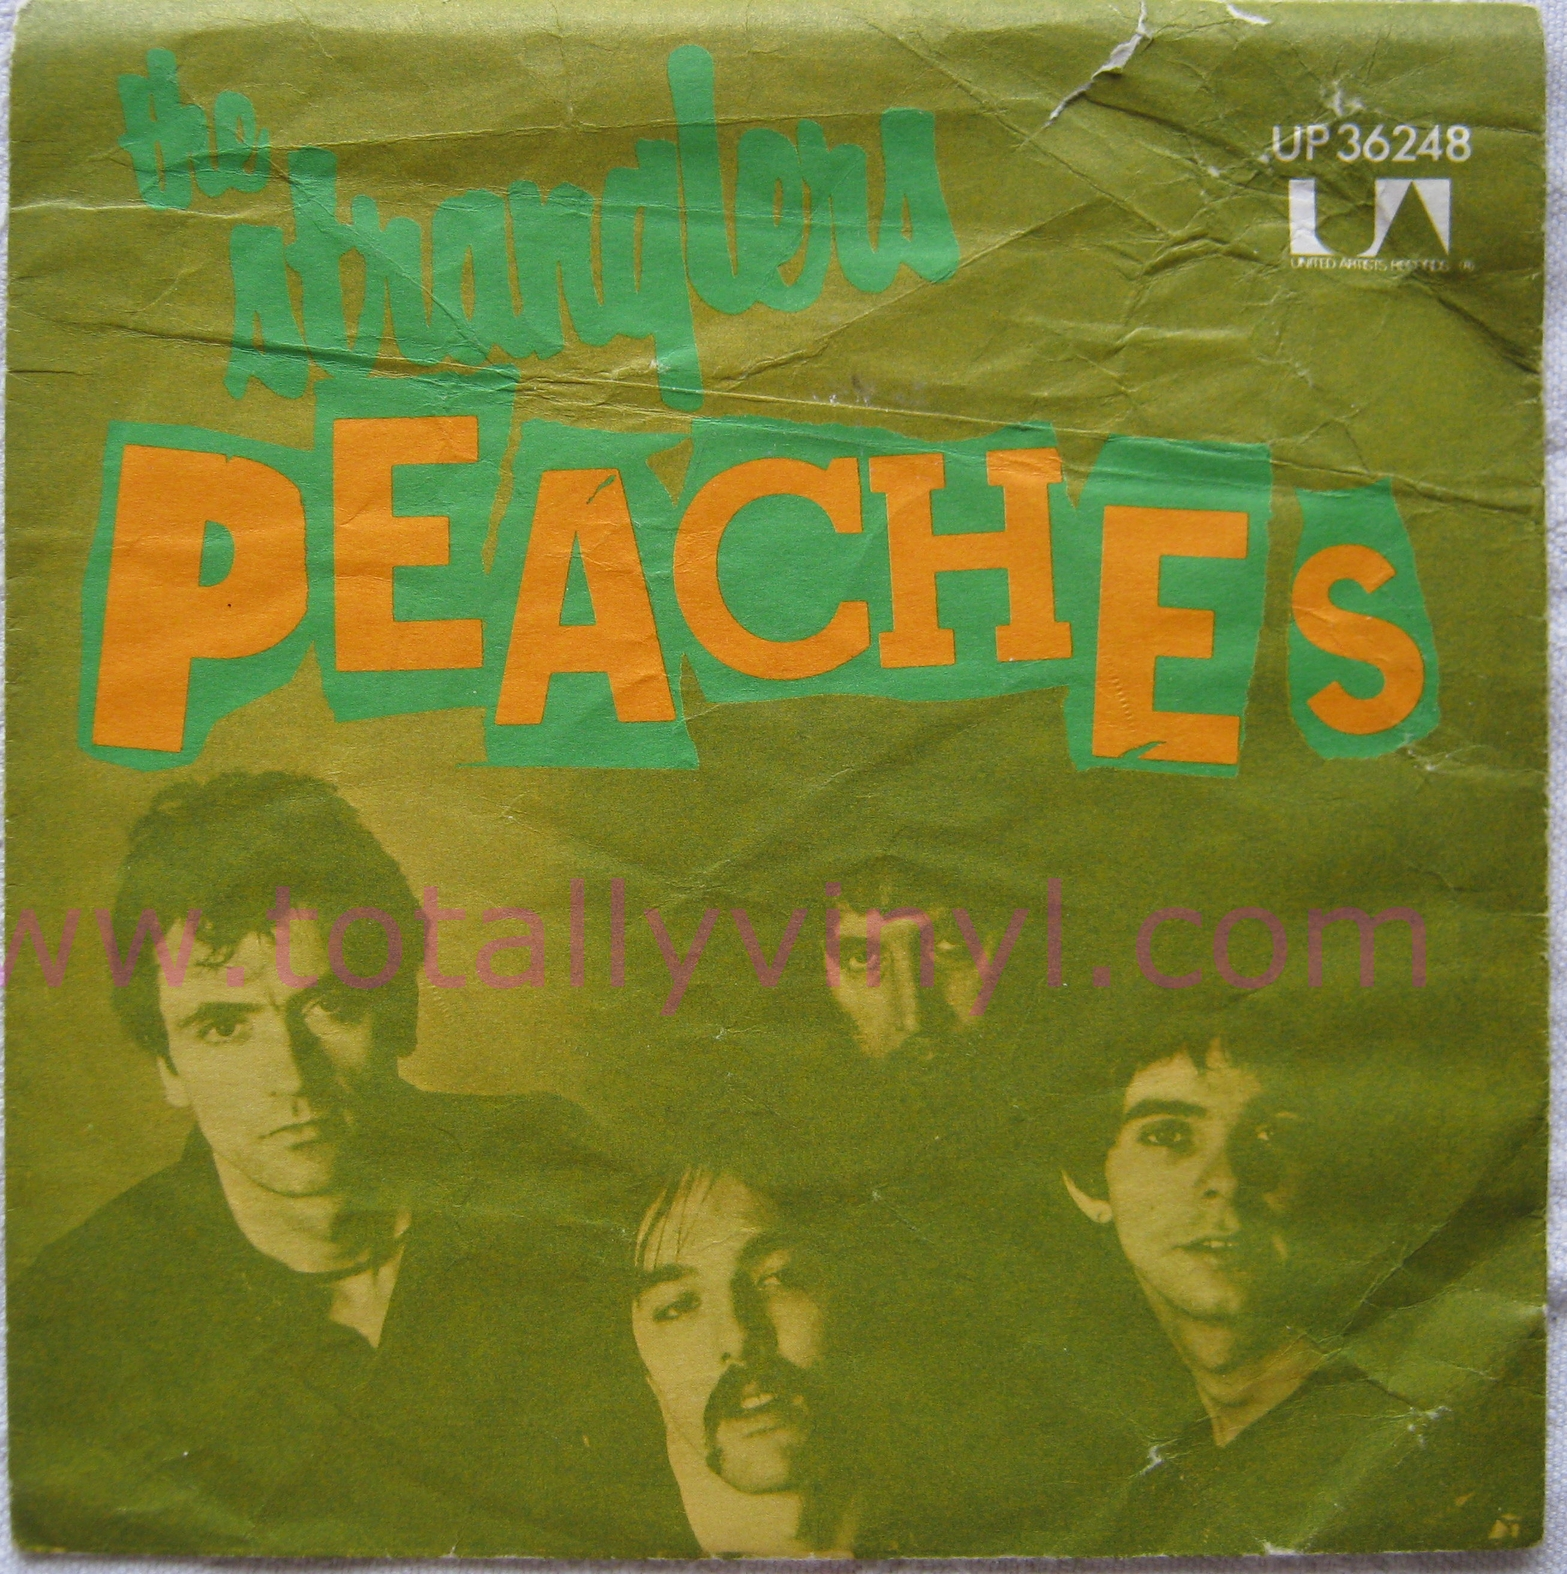 Totally Vinyl Records Stranglers The Peaches 7 Inch